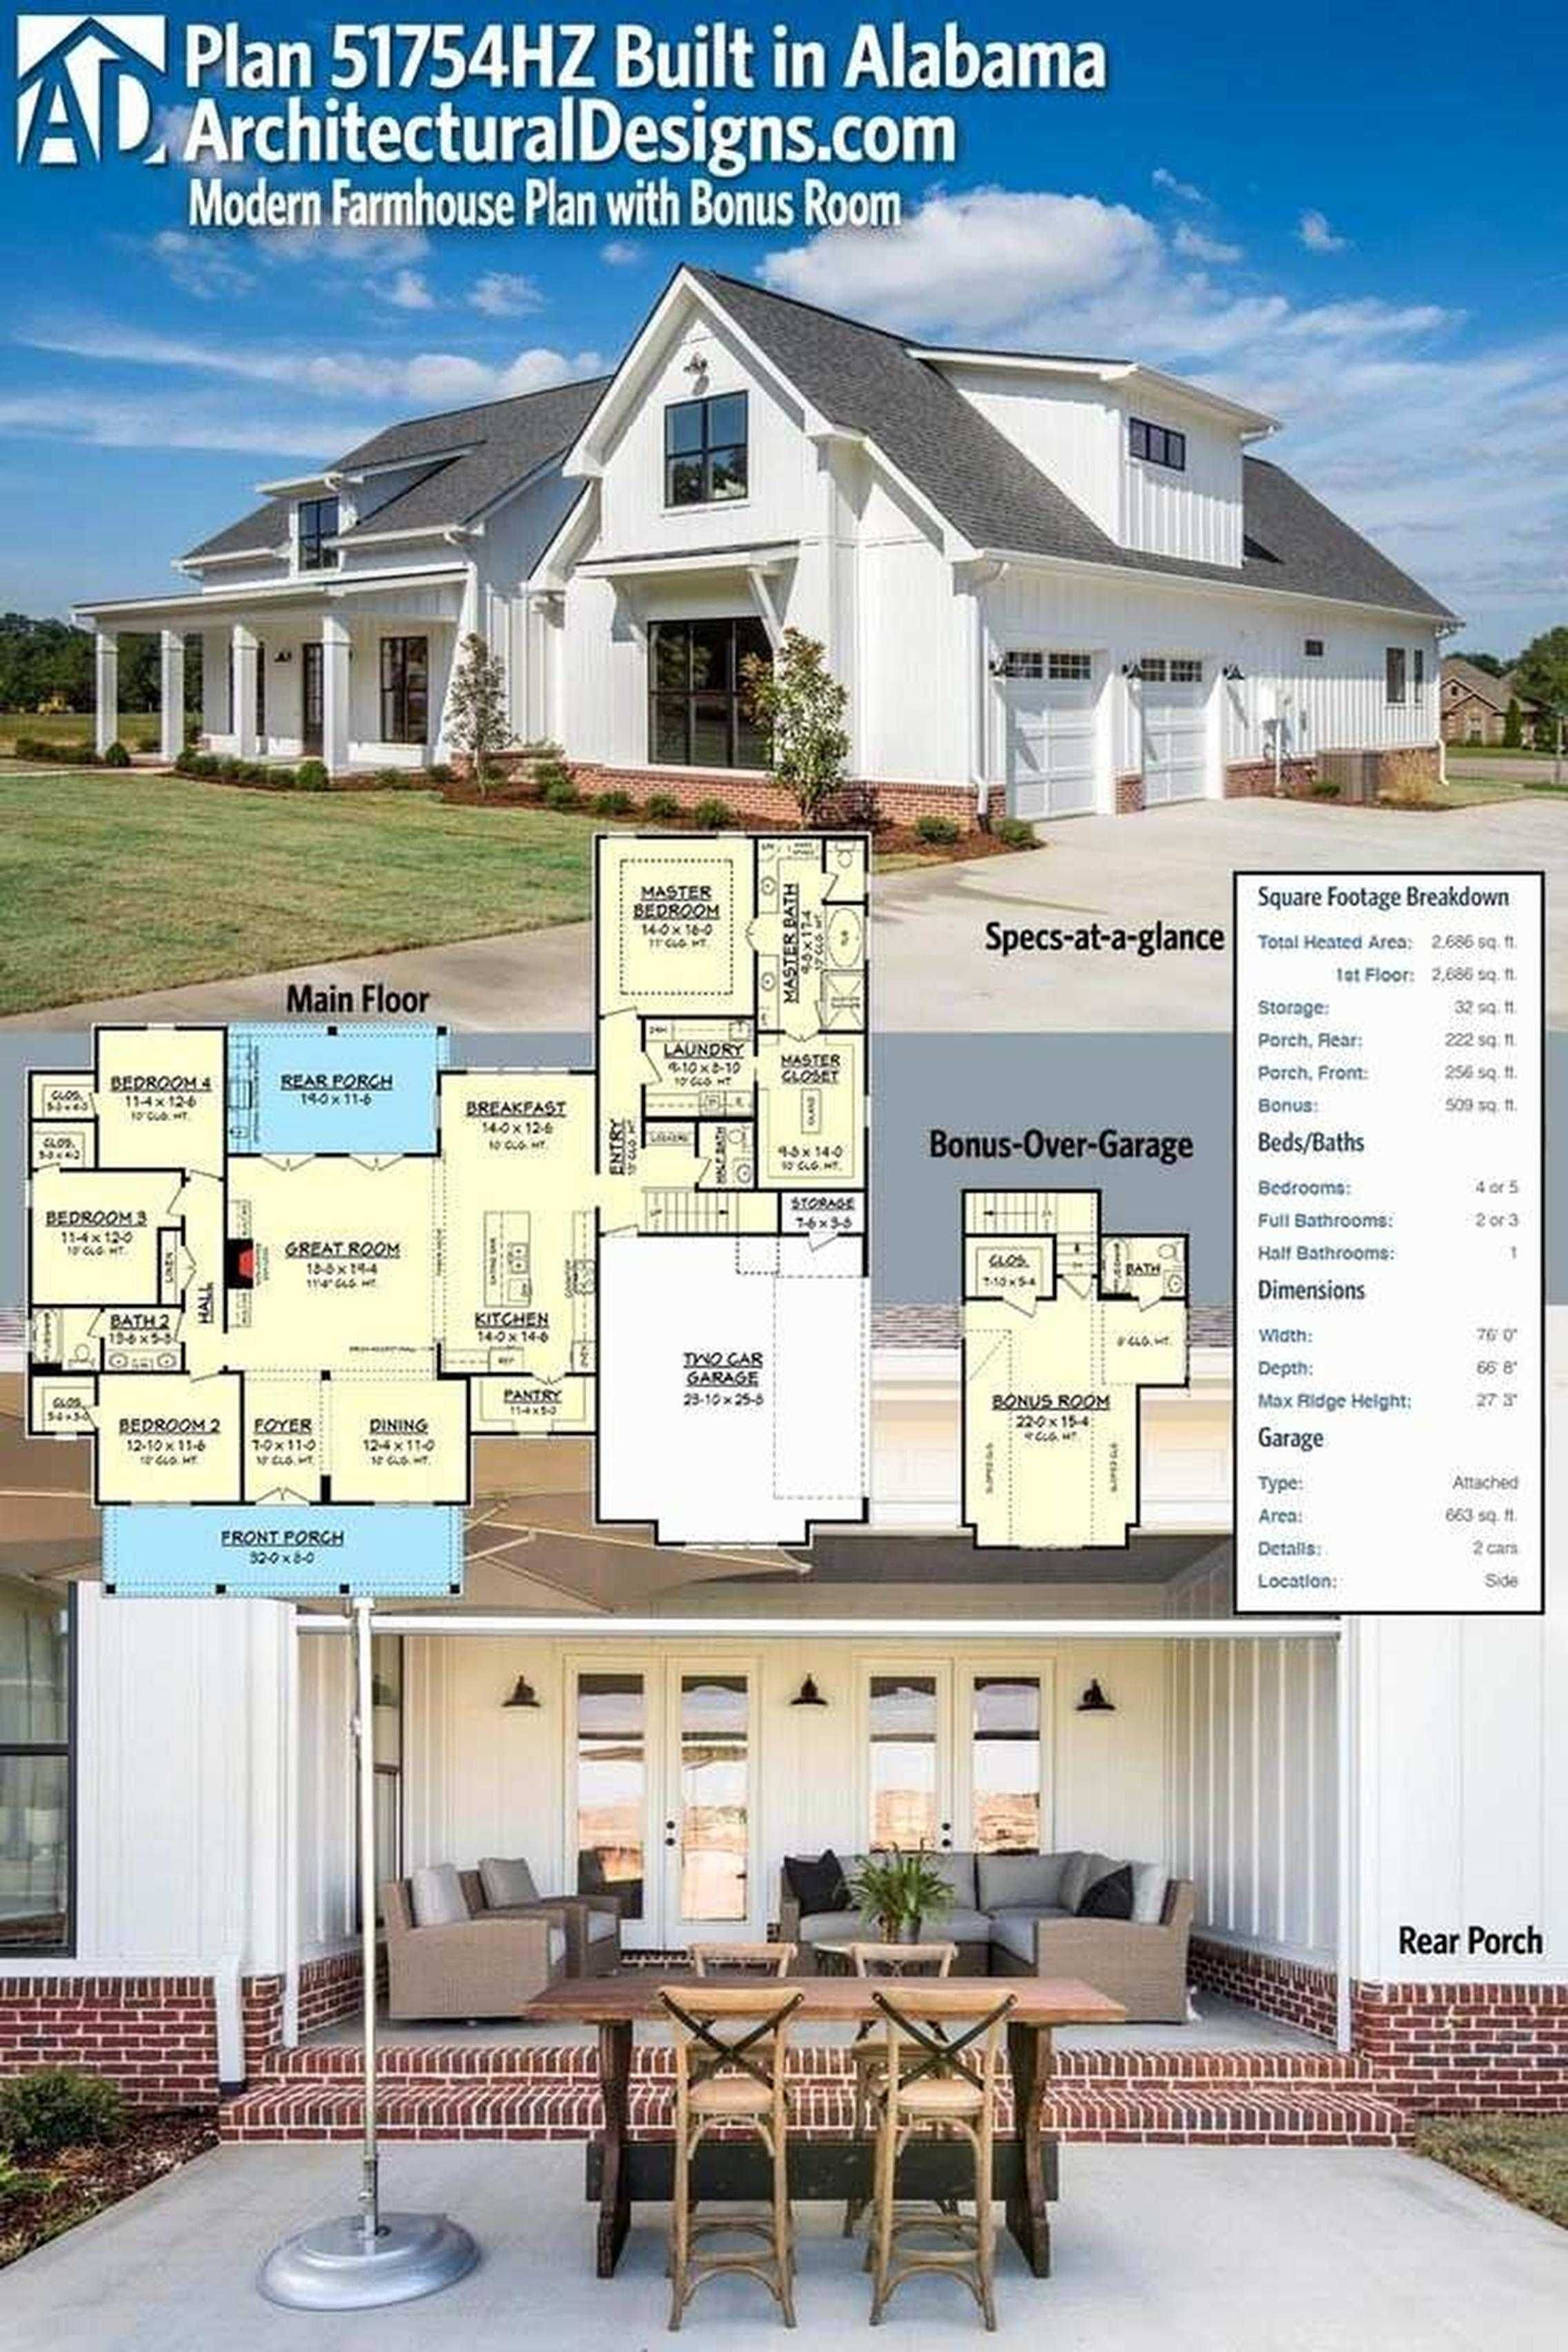 Single Story Wrap Around Porch : single, story, around, porch, Story, Farmhouse, Plans, Around, Porch, Beautiful, Modern, Plans,, Country, House